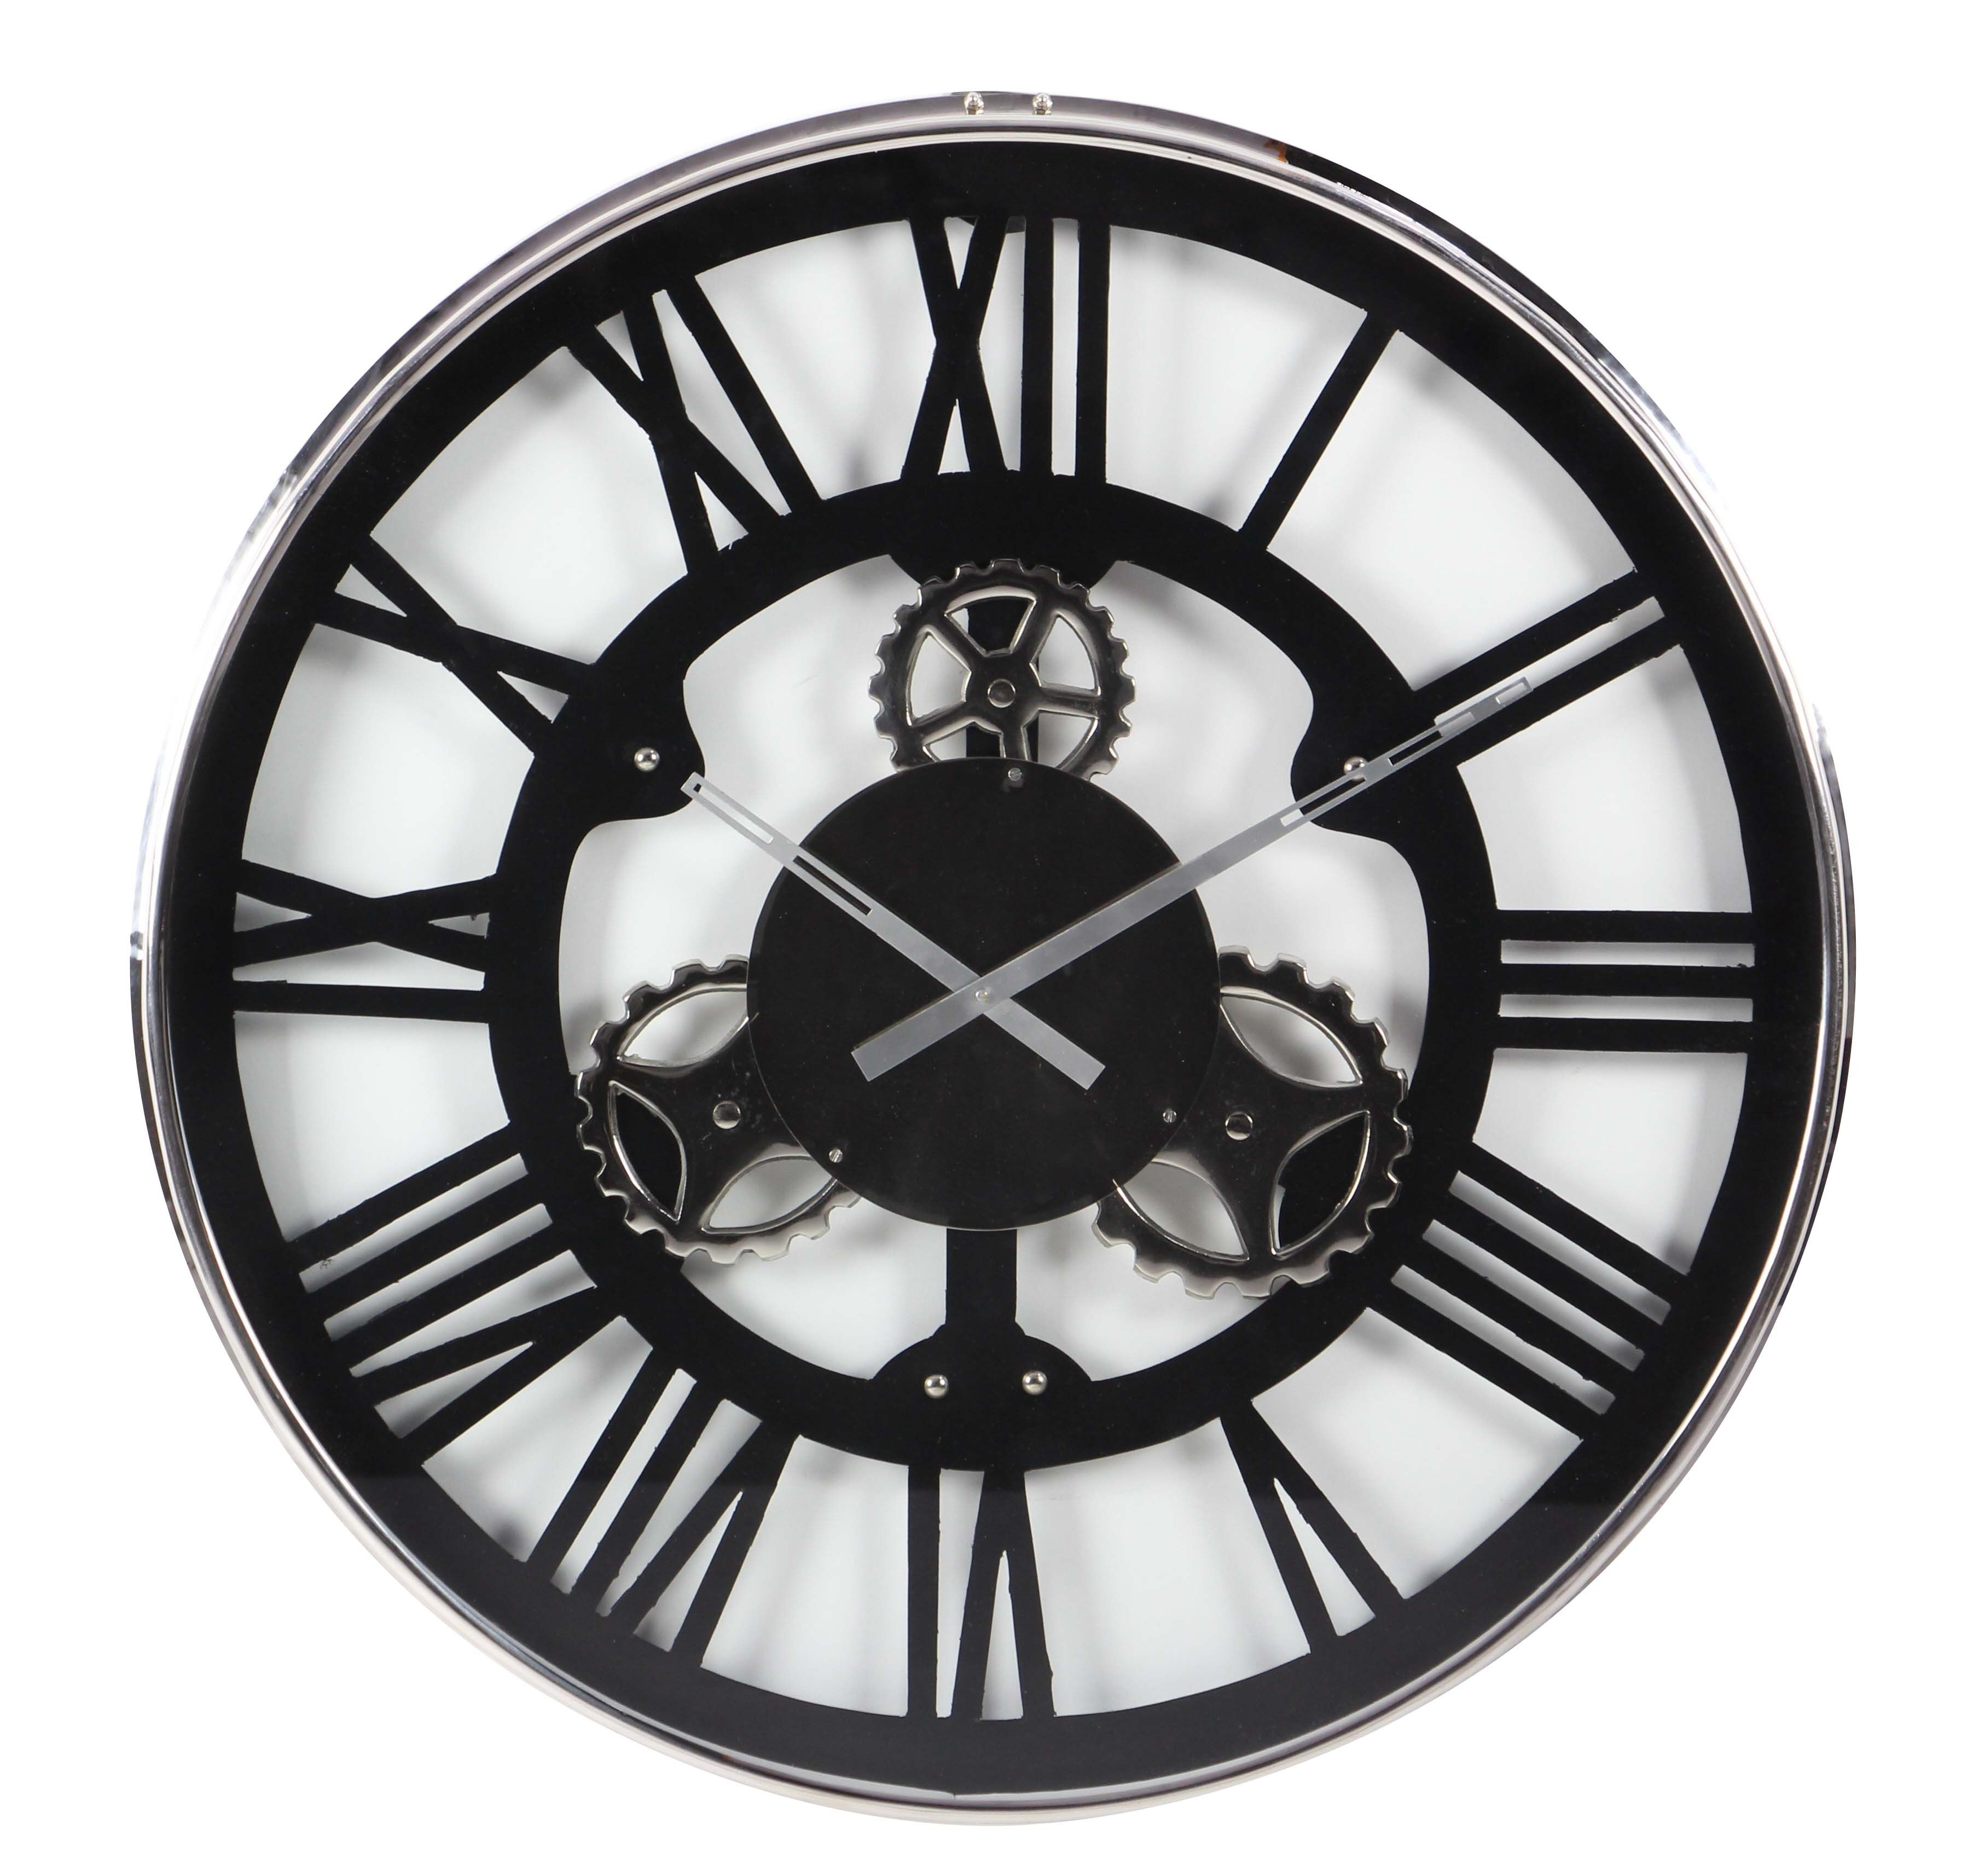 """GwG Outlet Stainless Steel Wall Clock 30""""D Wall Clocks"""